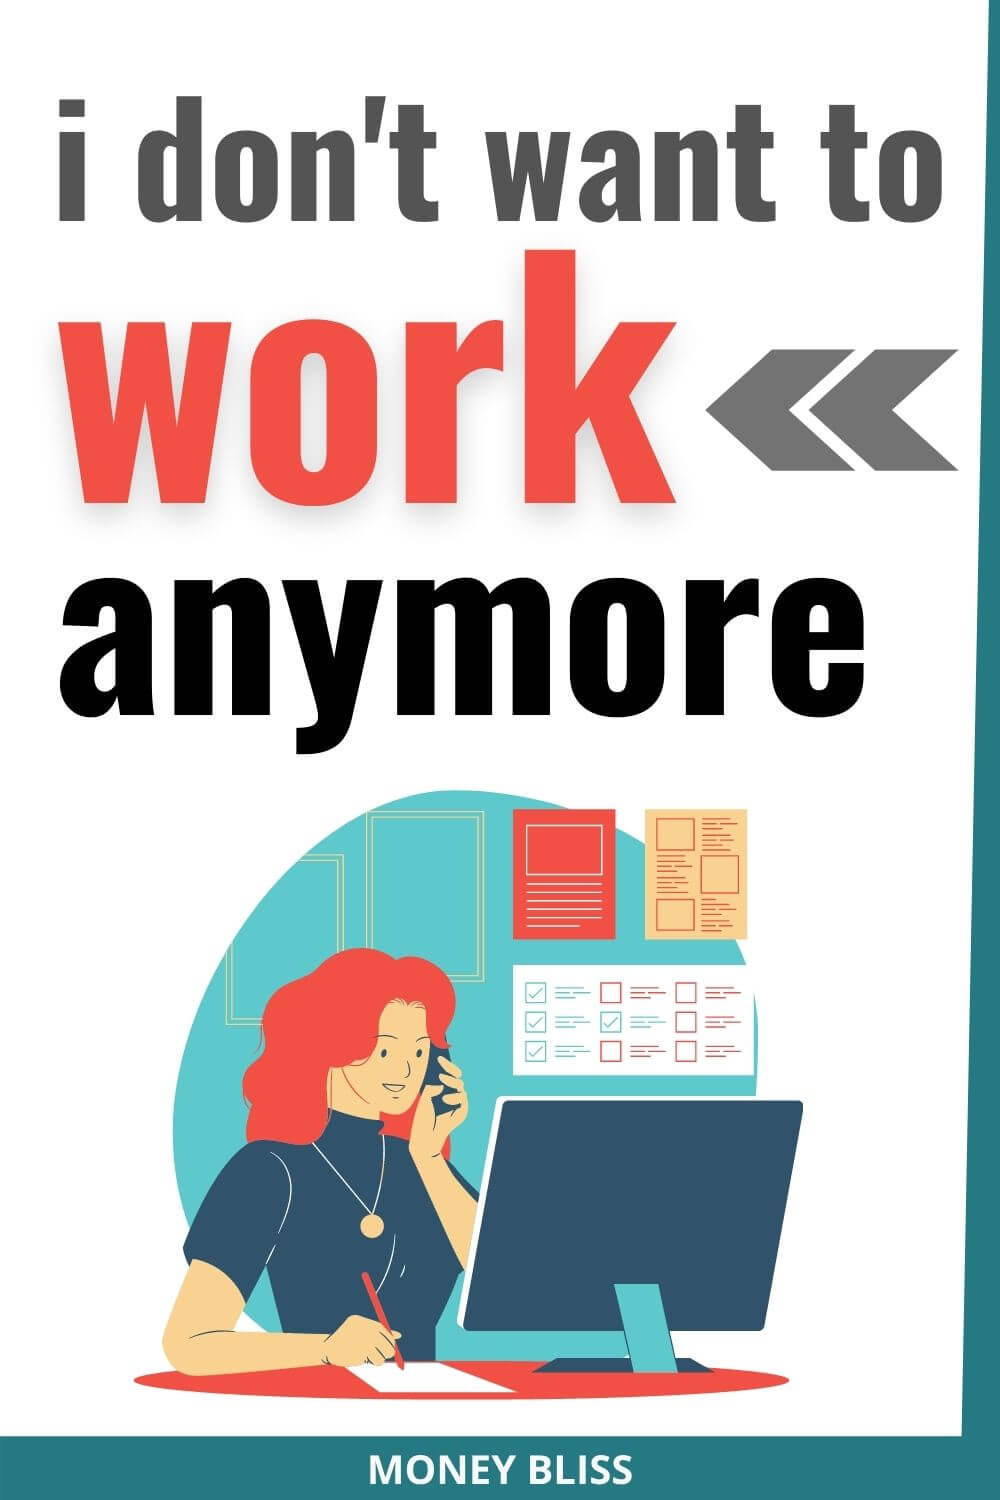 Dream about what a life could if you didn't have a job? If you are in the boat of I don't want to work anymore, then you must read this post. This is how you can retire early. You don't have to be 55. These important money management skills you need to build passive income.